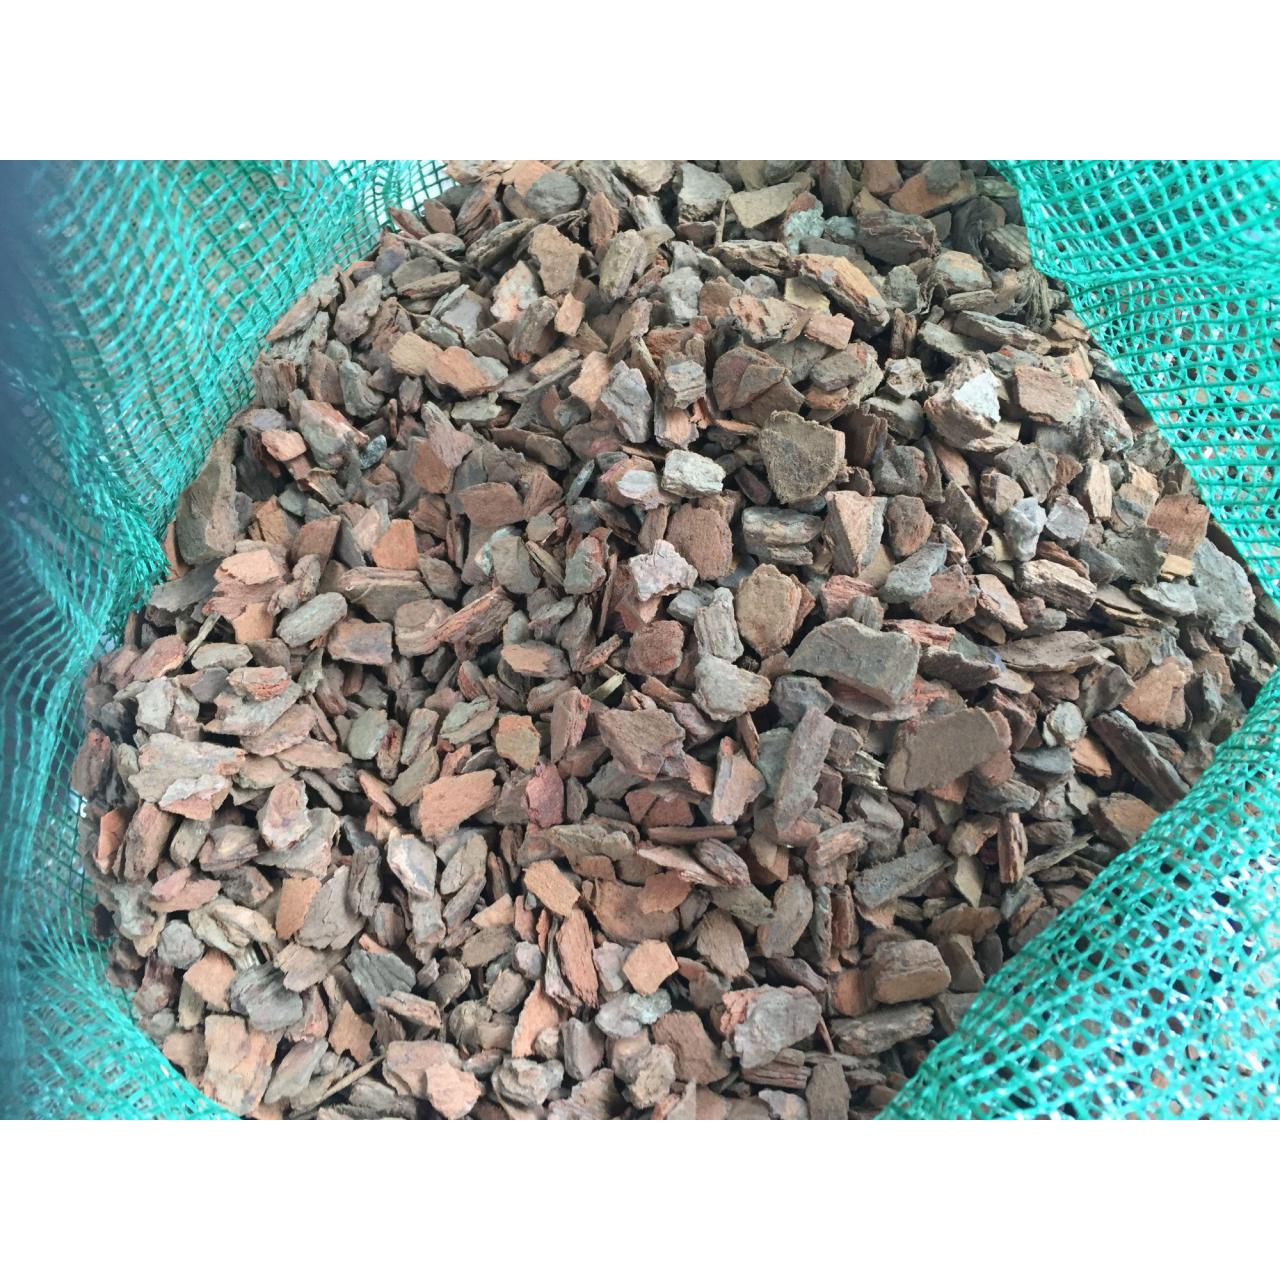 Quality No3 Kiwi Orchid Bark for sale